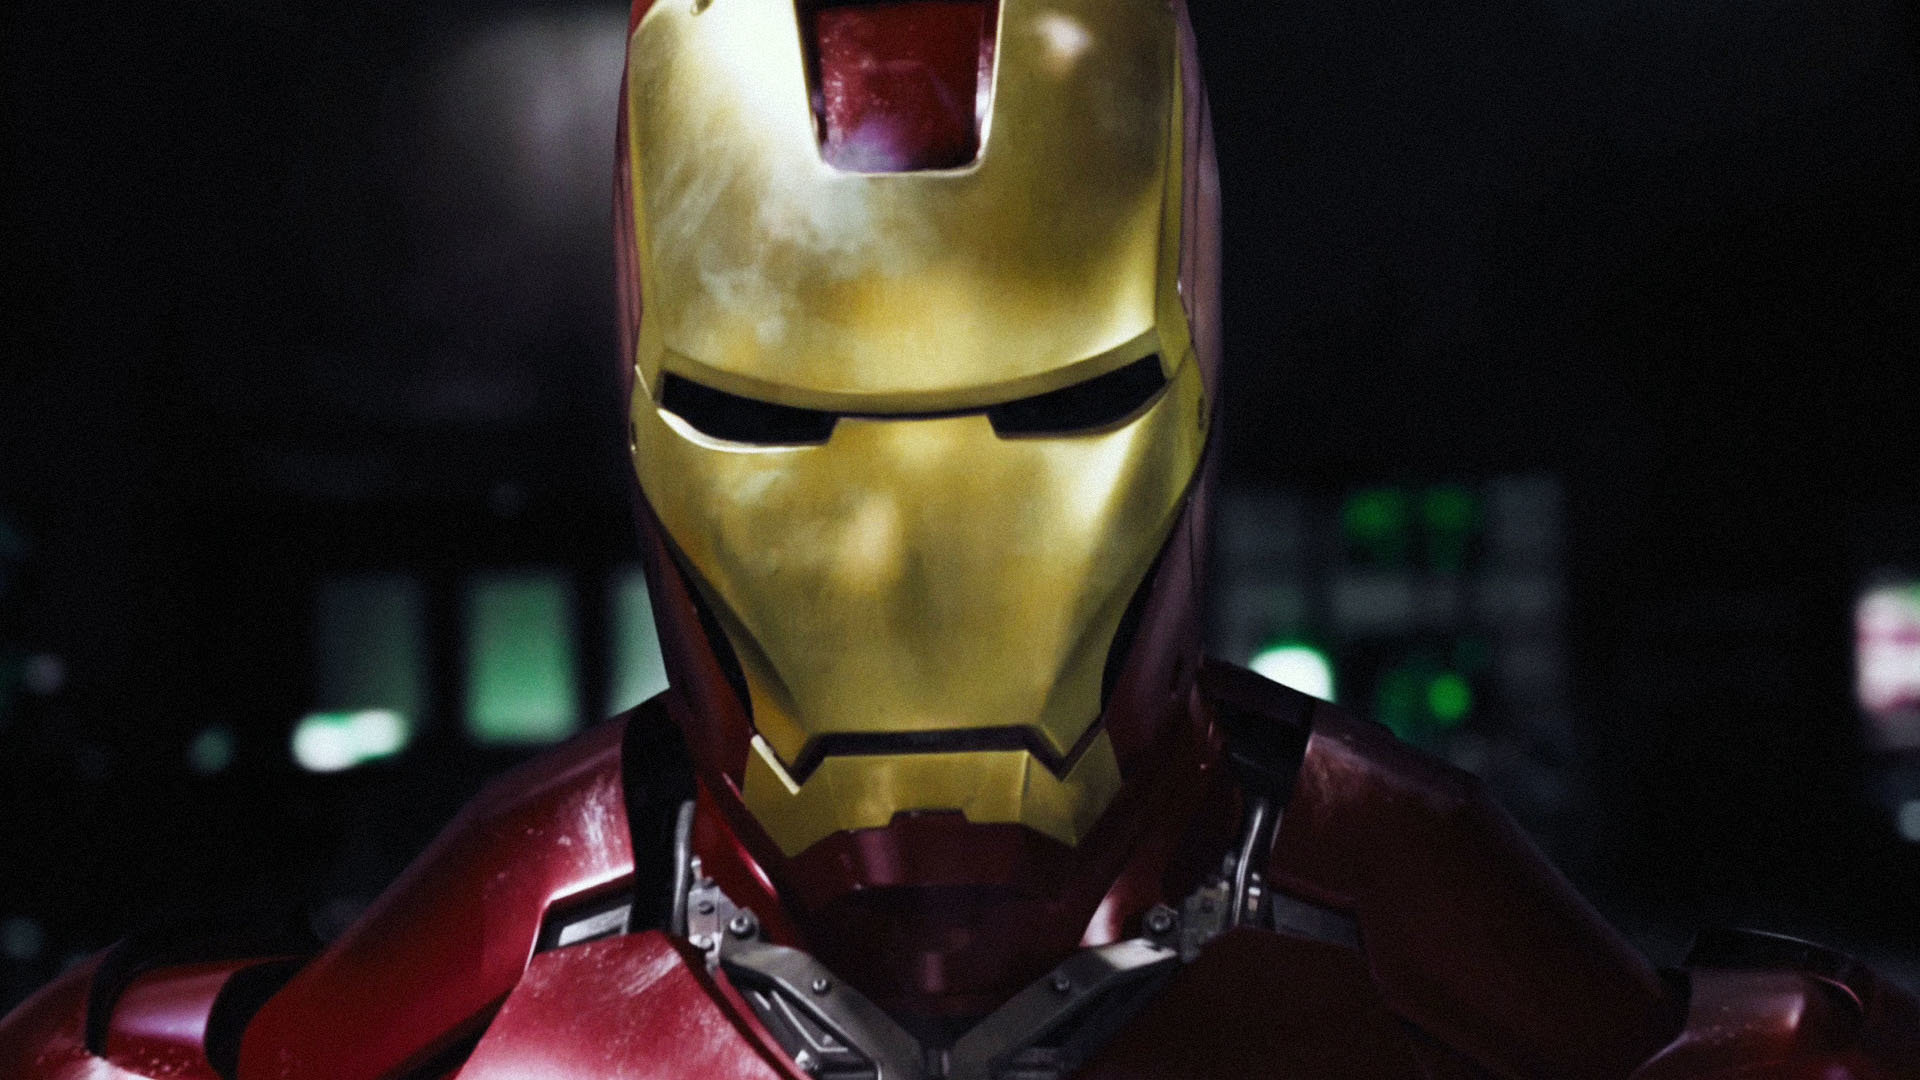 Iron Man 2 wallpapers Full HD 1080p desktop backgrounds